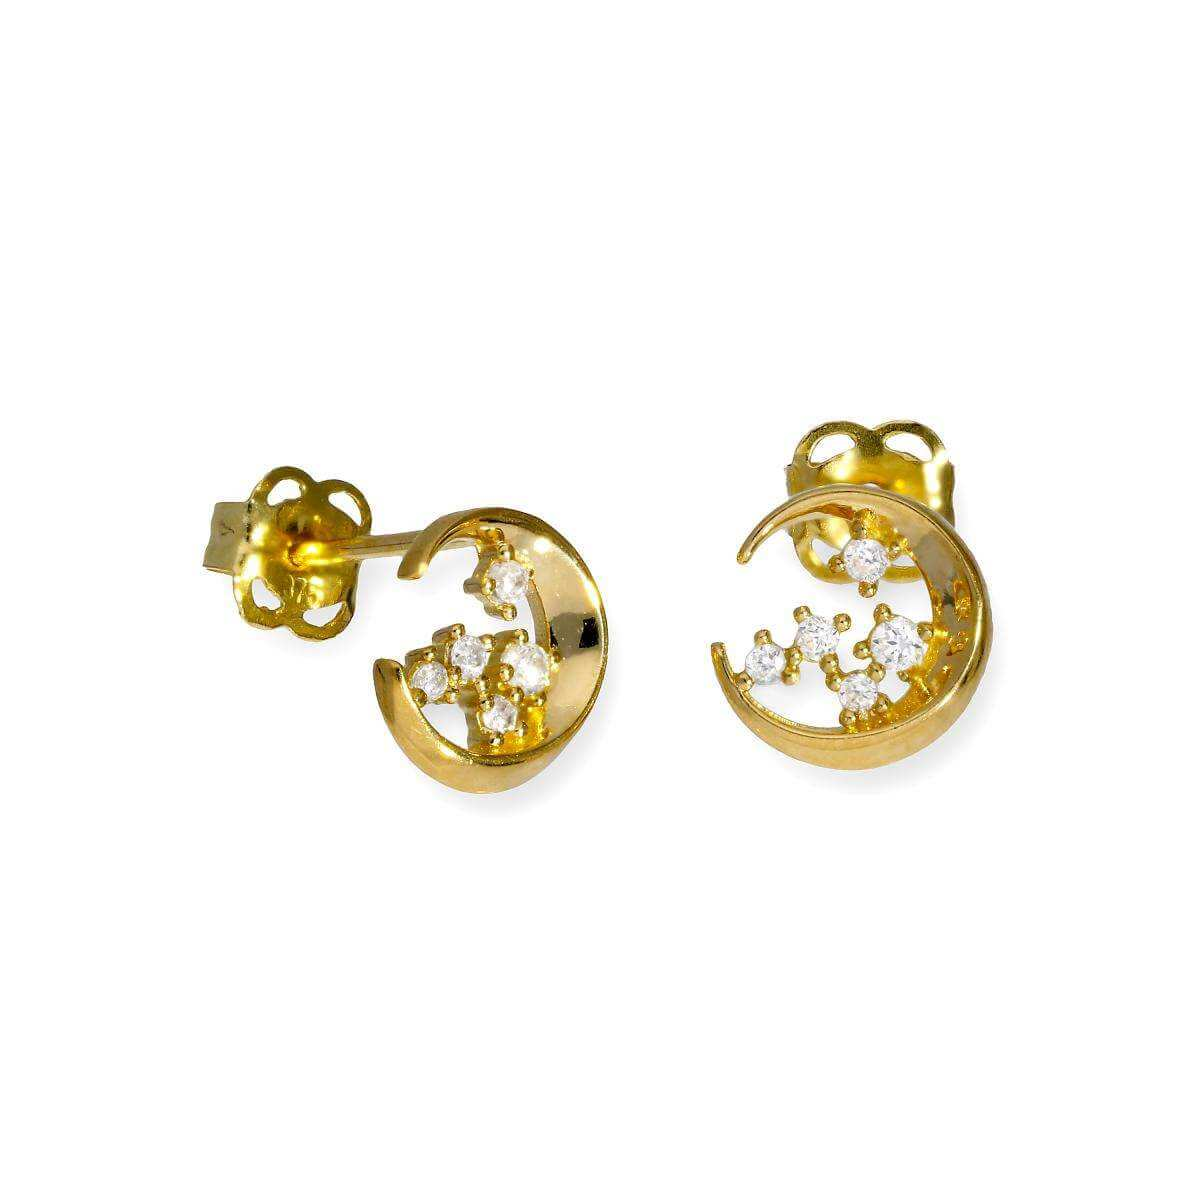 9ct Gold & Clear CZ Crystal Moon & Stars Stud Earrings